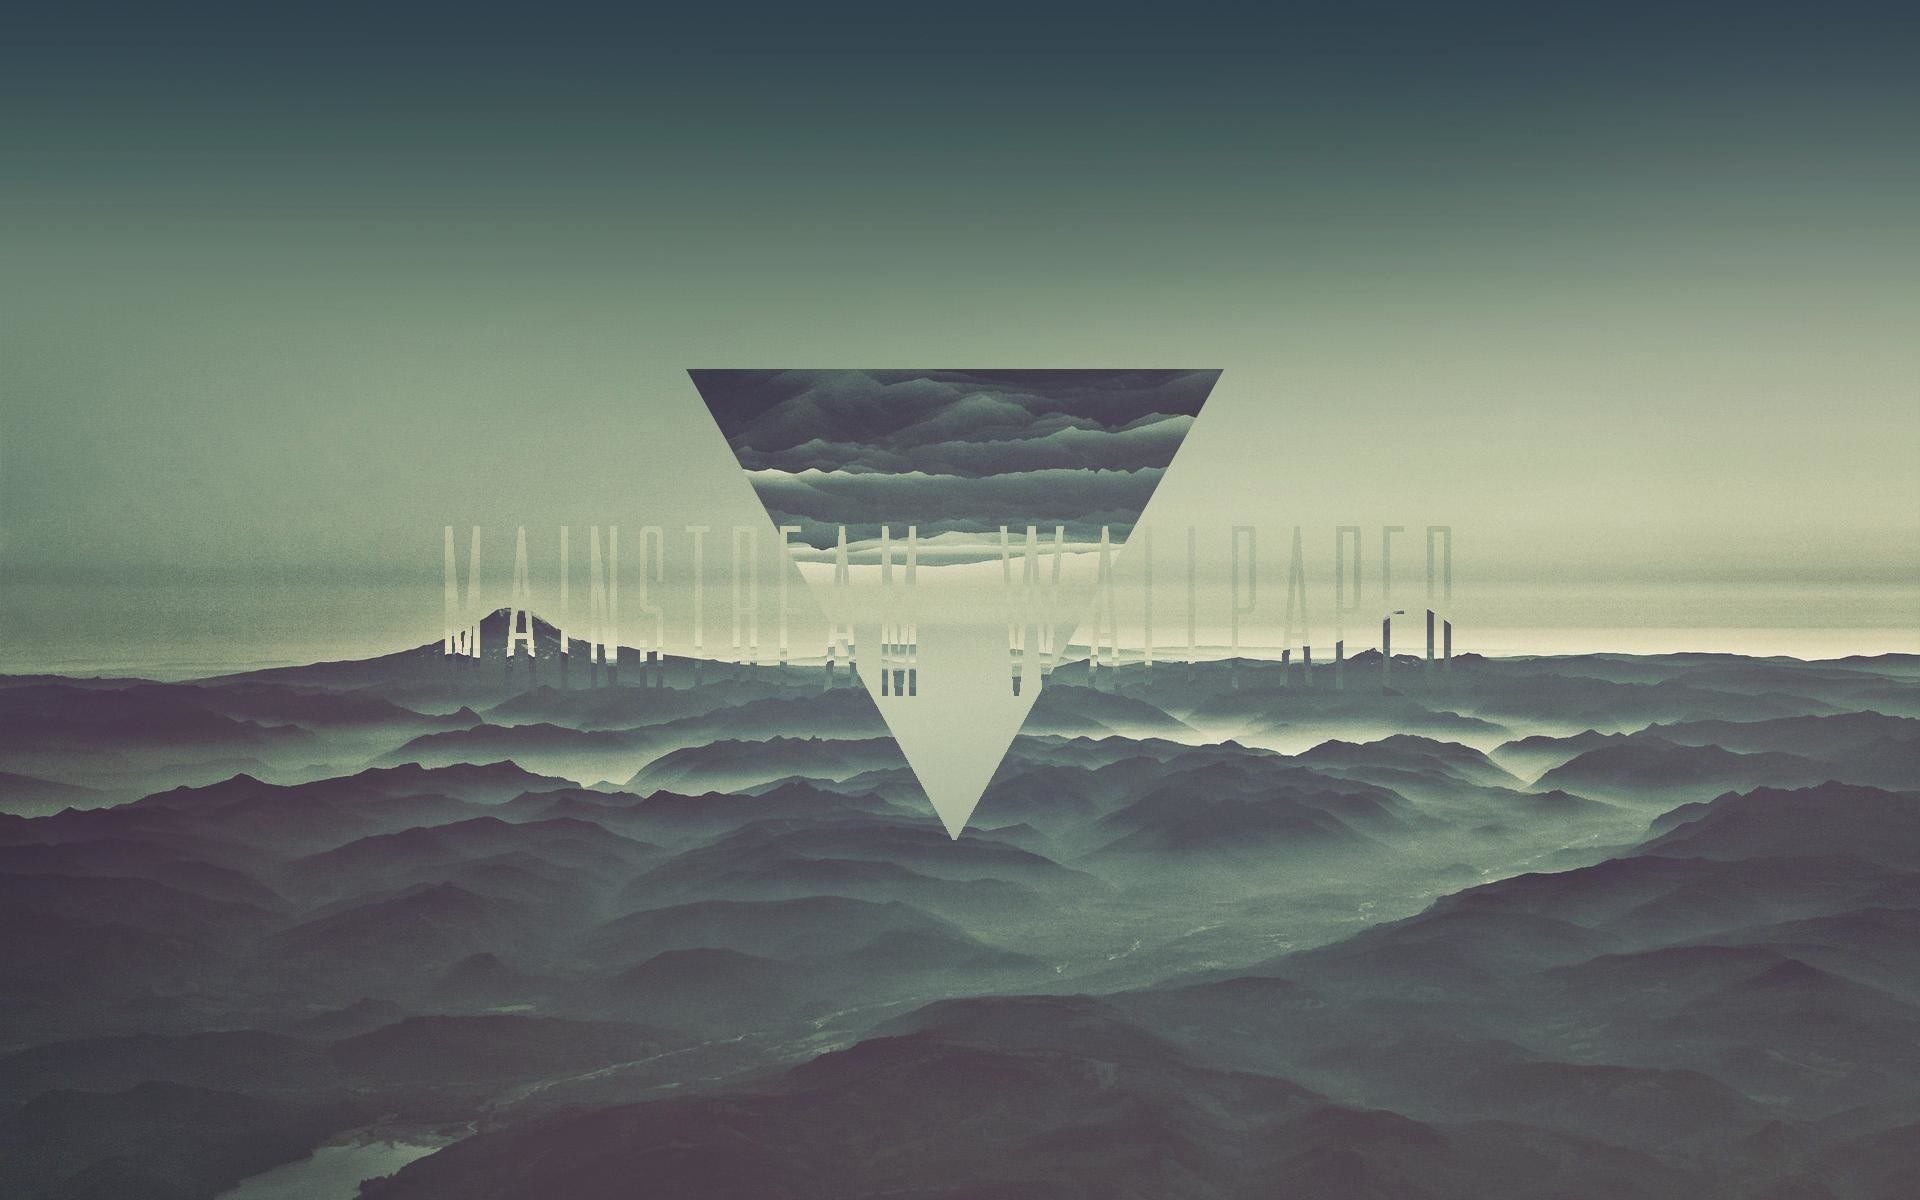 Mainstream-wallpaper-hipster-triangle-hd